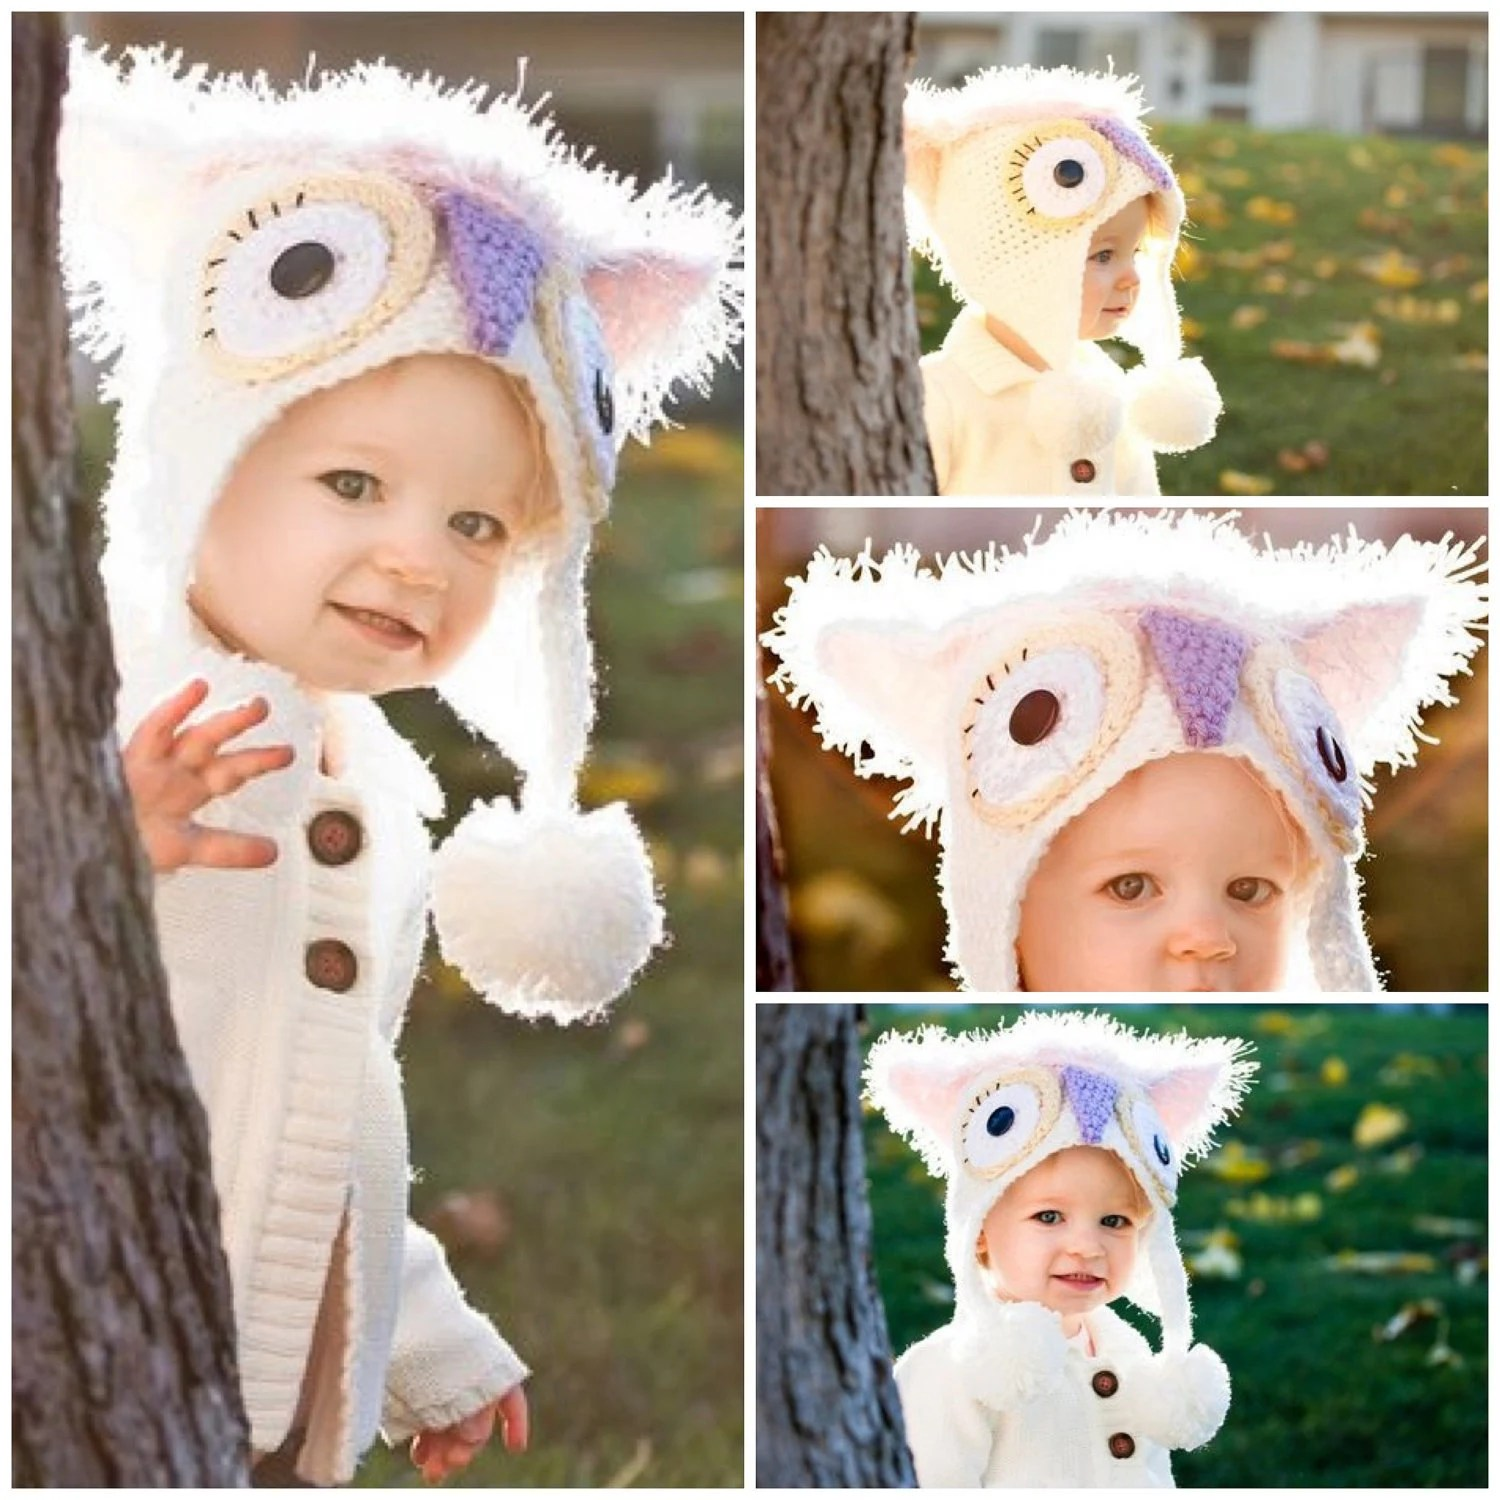 Speckled Frog's Mystic Owl Hat